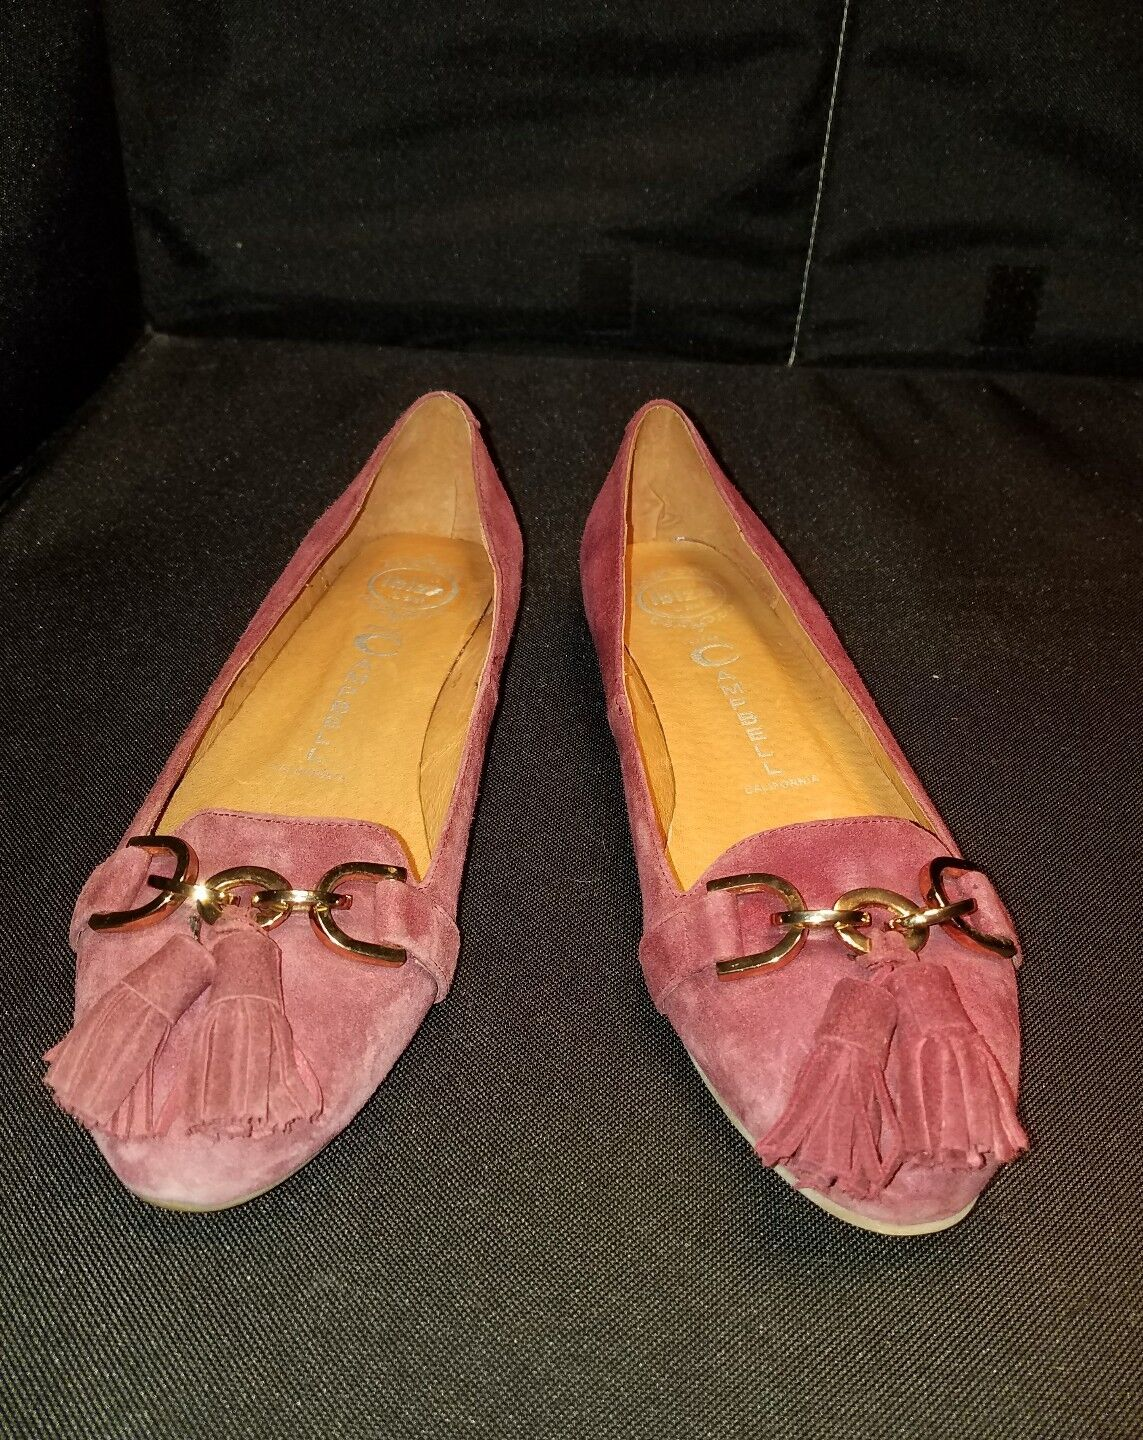 NWOB Jeffrey Campbell US7 Plum Suede gold Chain Tassel Ballet Flats shoes